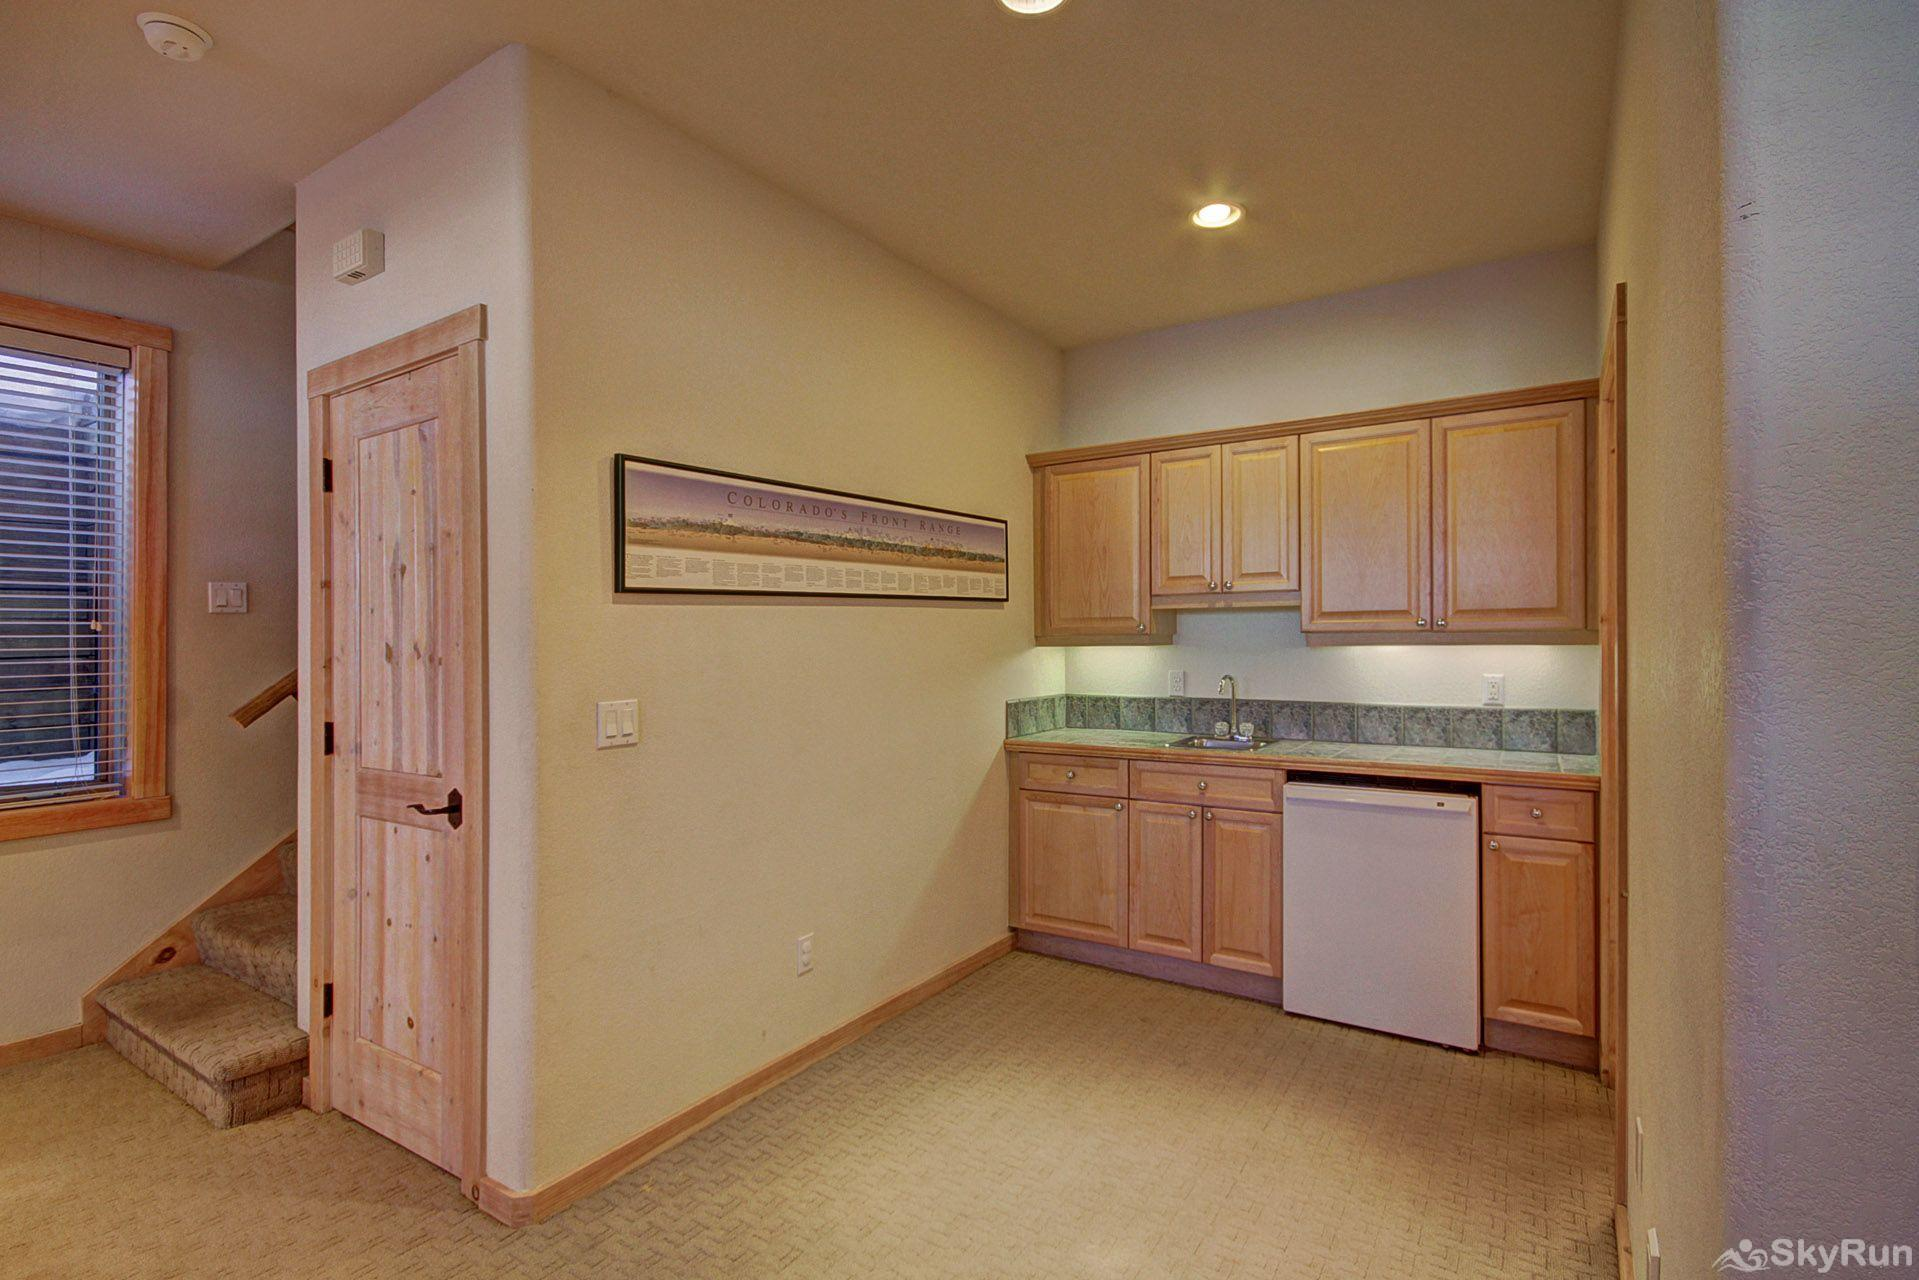 EN402 Ranch at Eagles Nest 3BR 4BA Wet bar on lower level